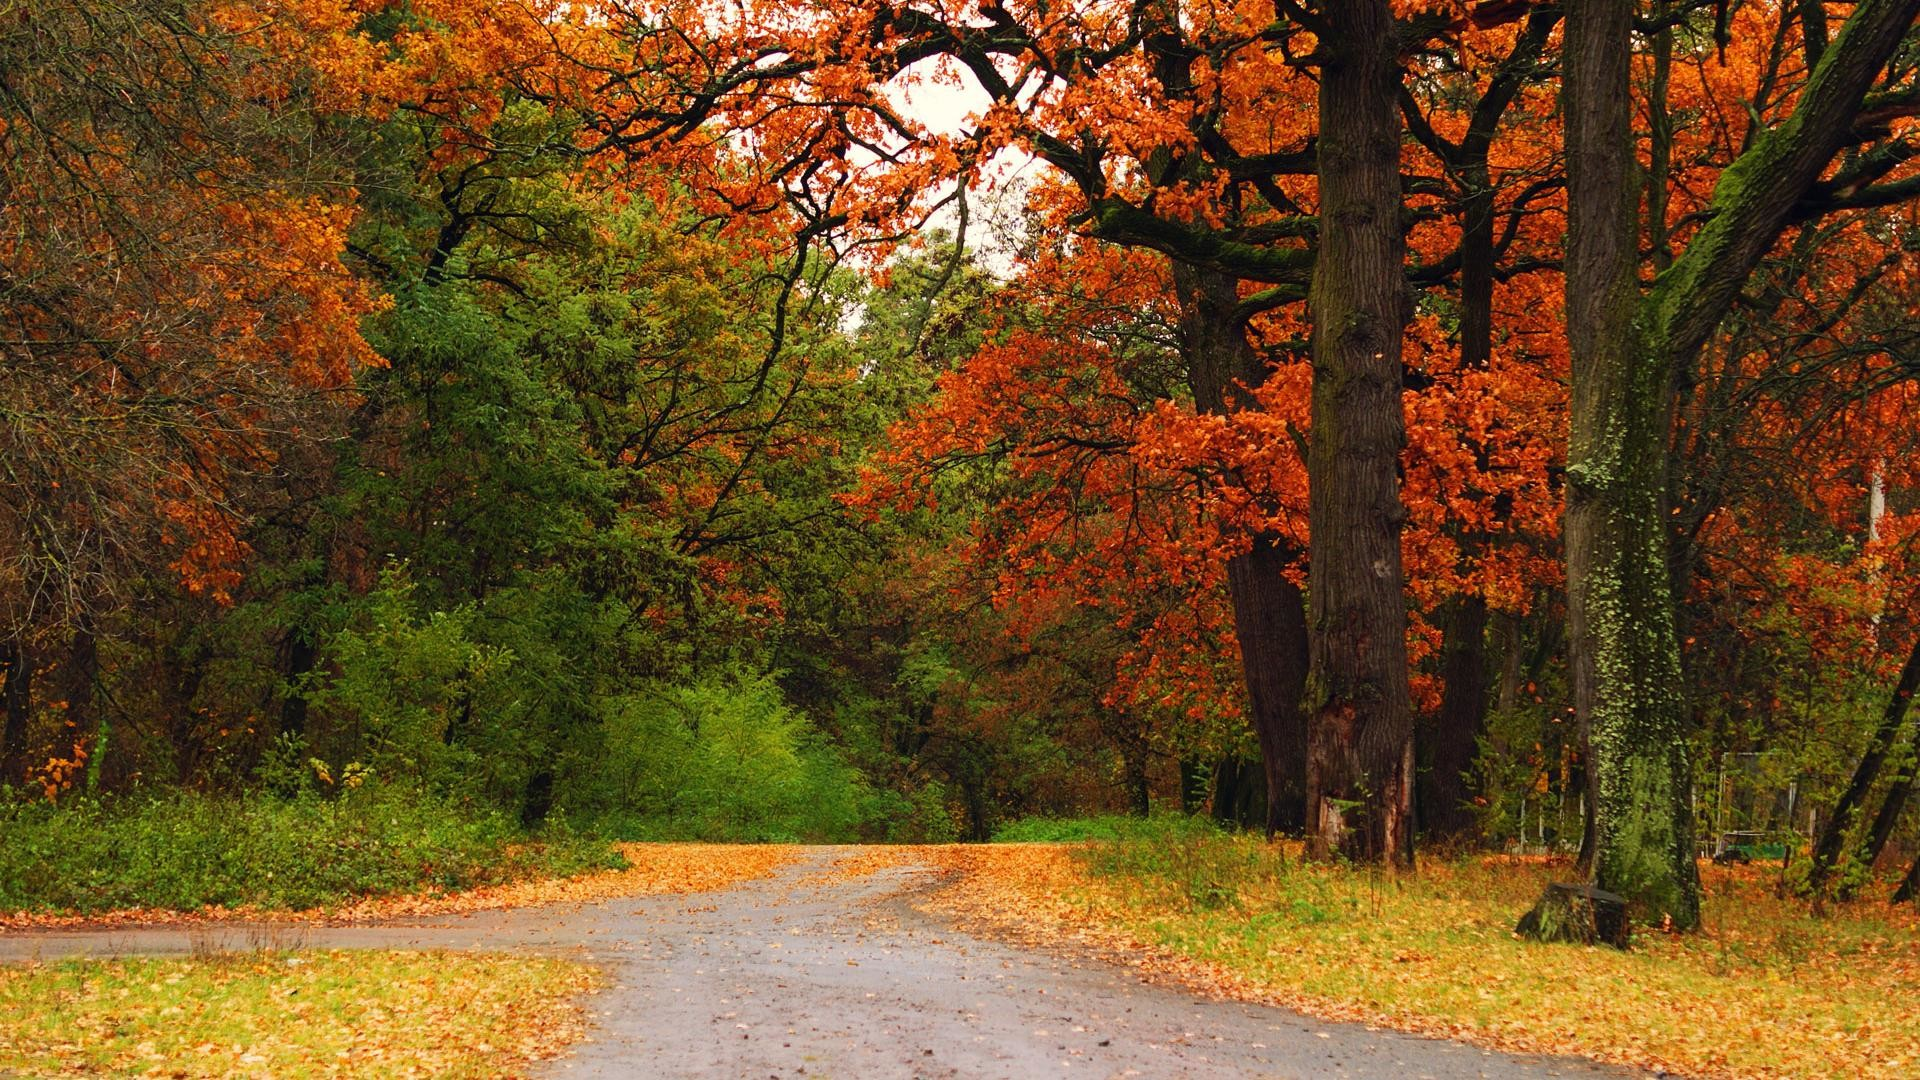 50 Hd Wood Wallpapers For Free Download: Beautiful Fall Backgrounds (50+ Images